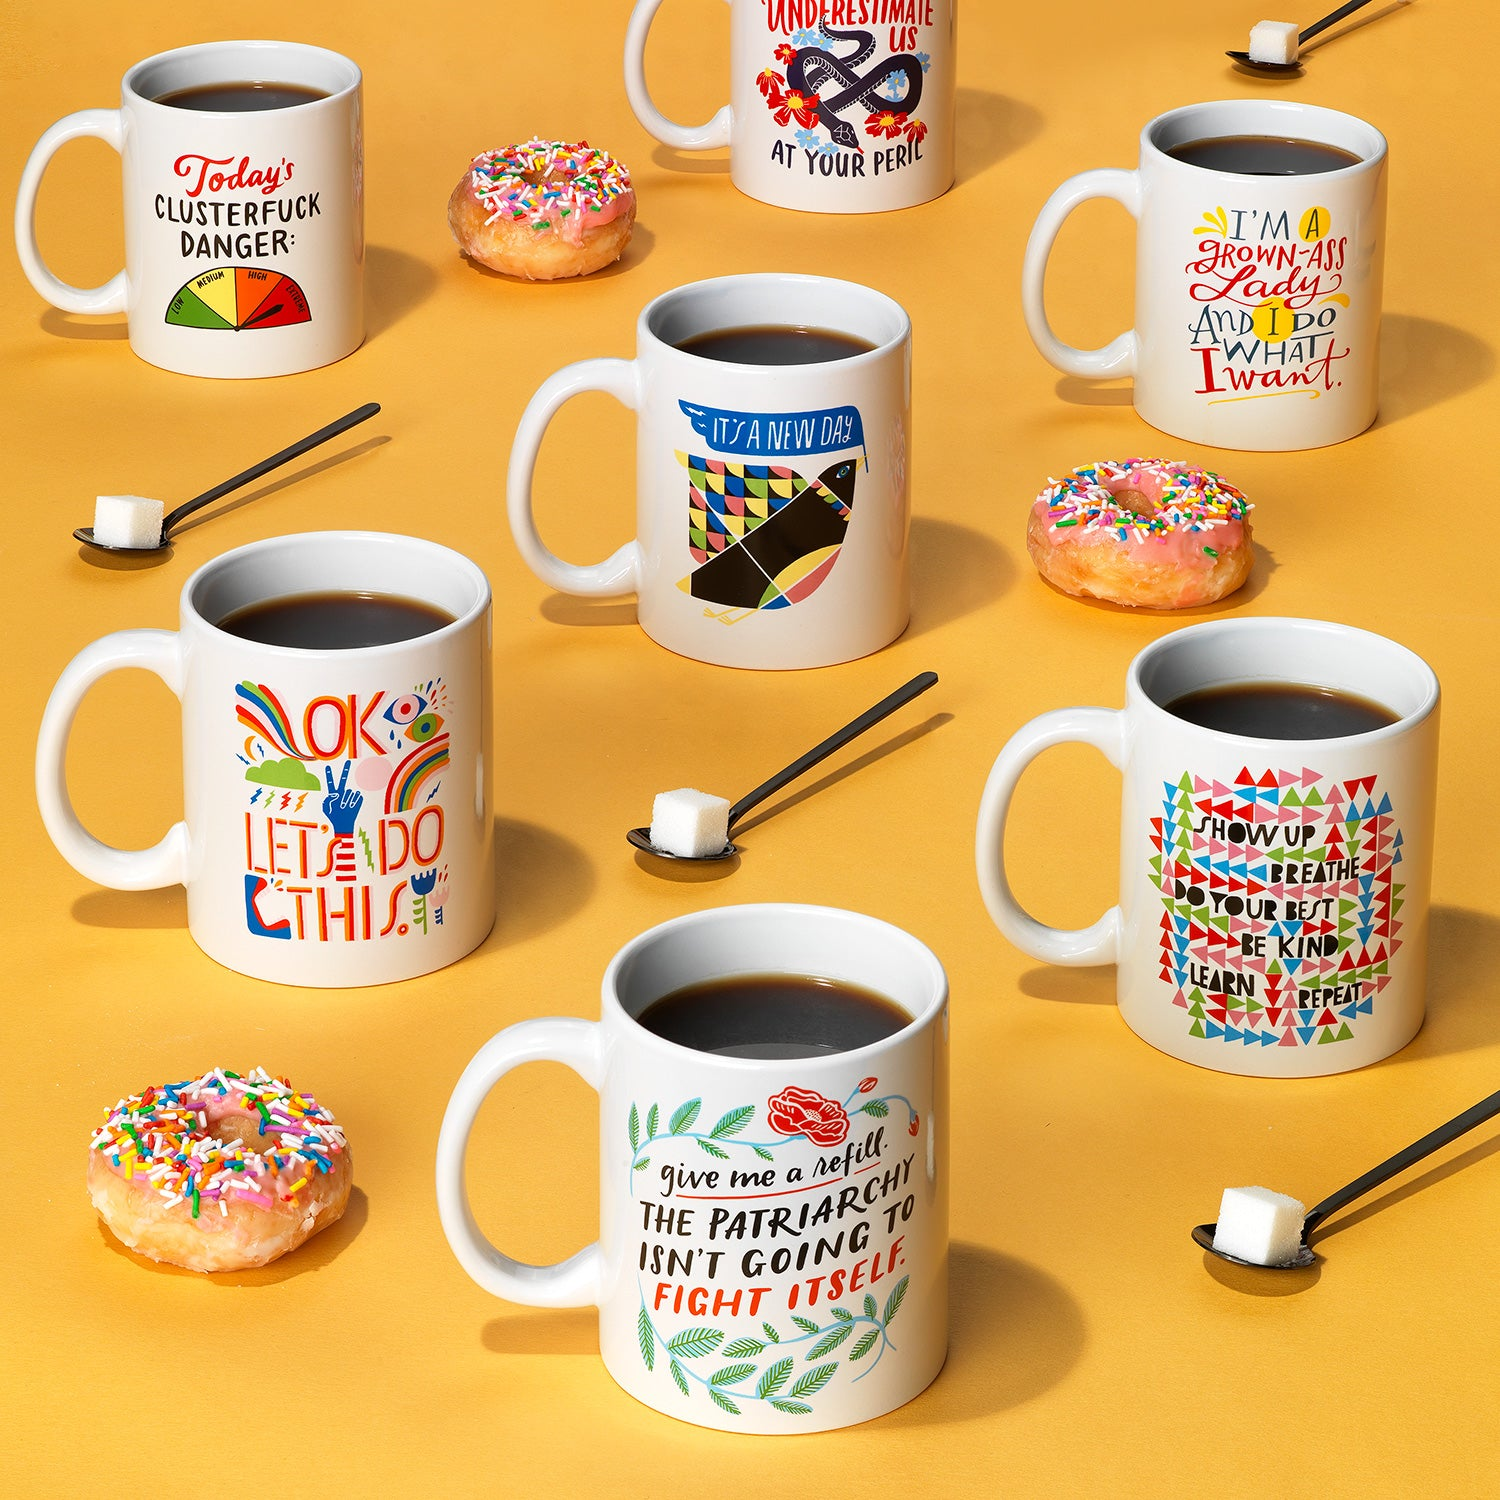 db60799f15c Funny Coffee Mugs for Home & Office | Emily McDowell & Friends